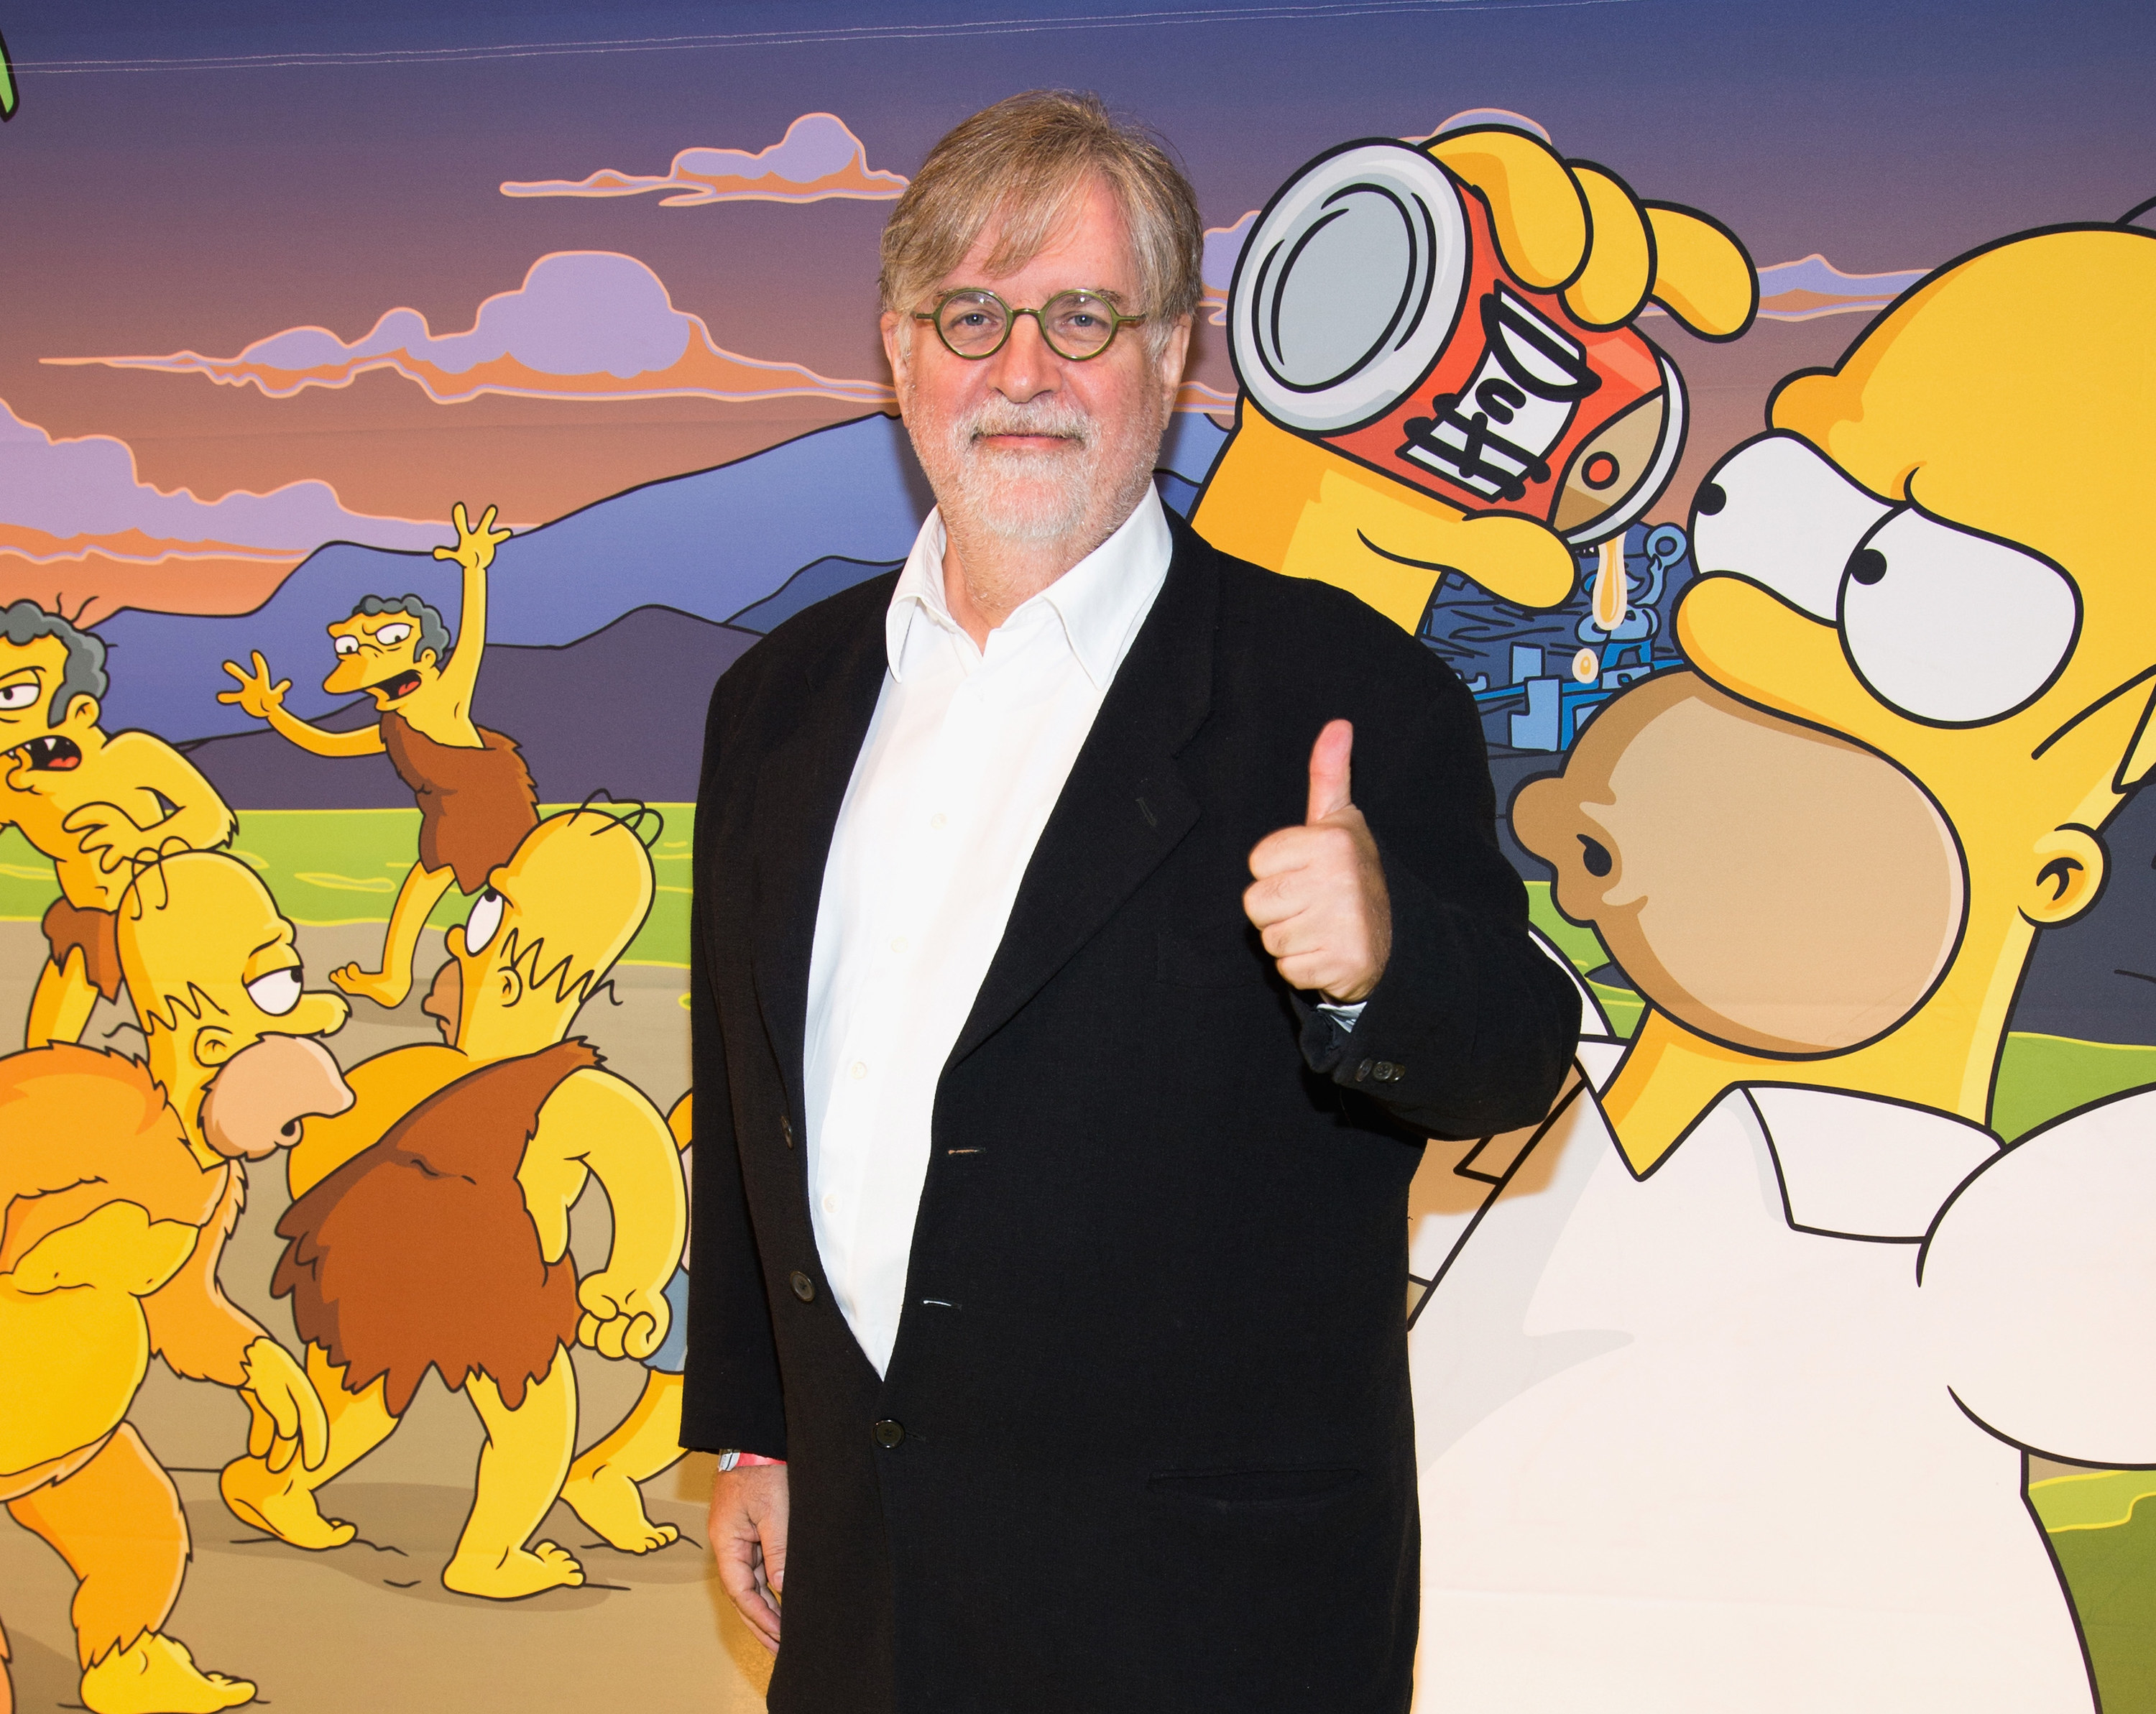 Simpsons creator Matt Groening gives a thumbs up in front of a Simpsons wall at an event in LA